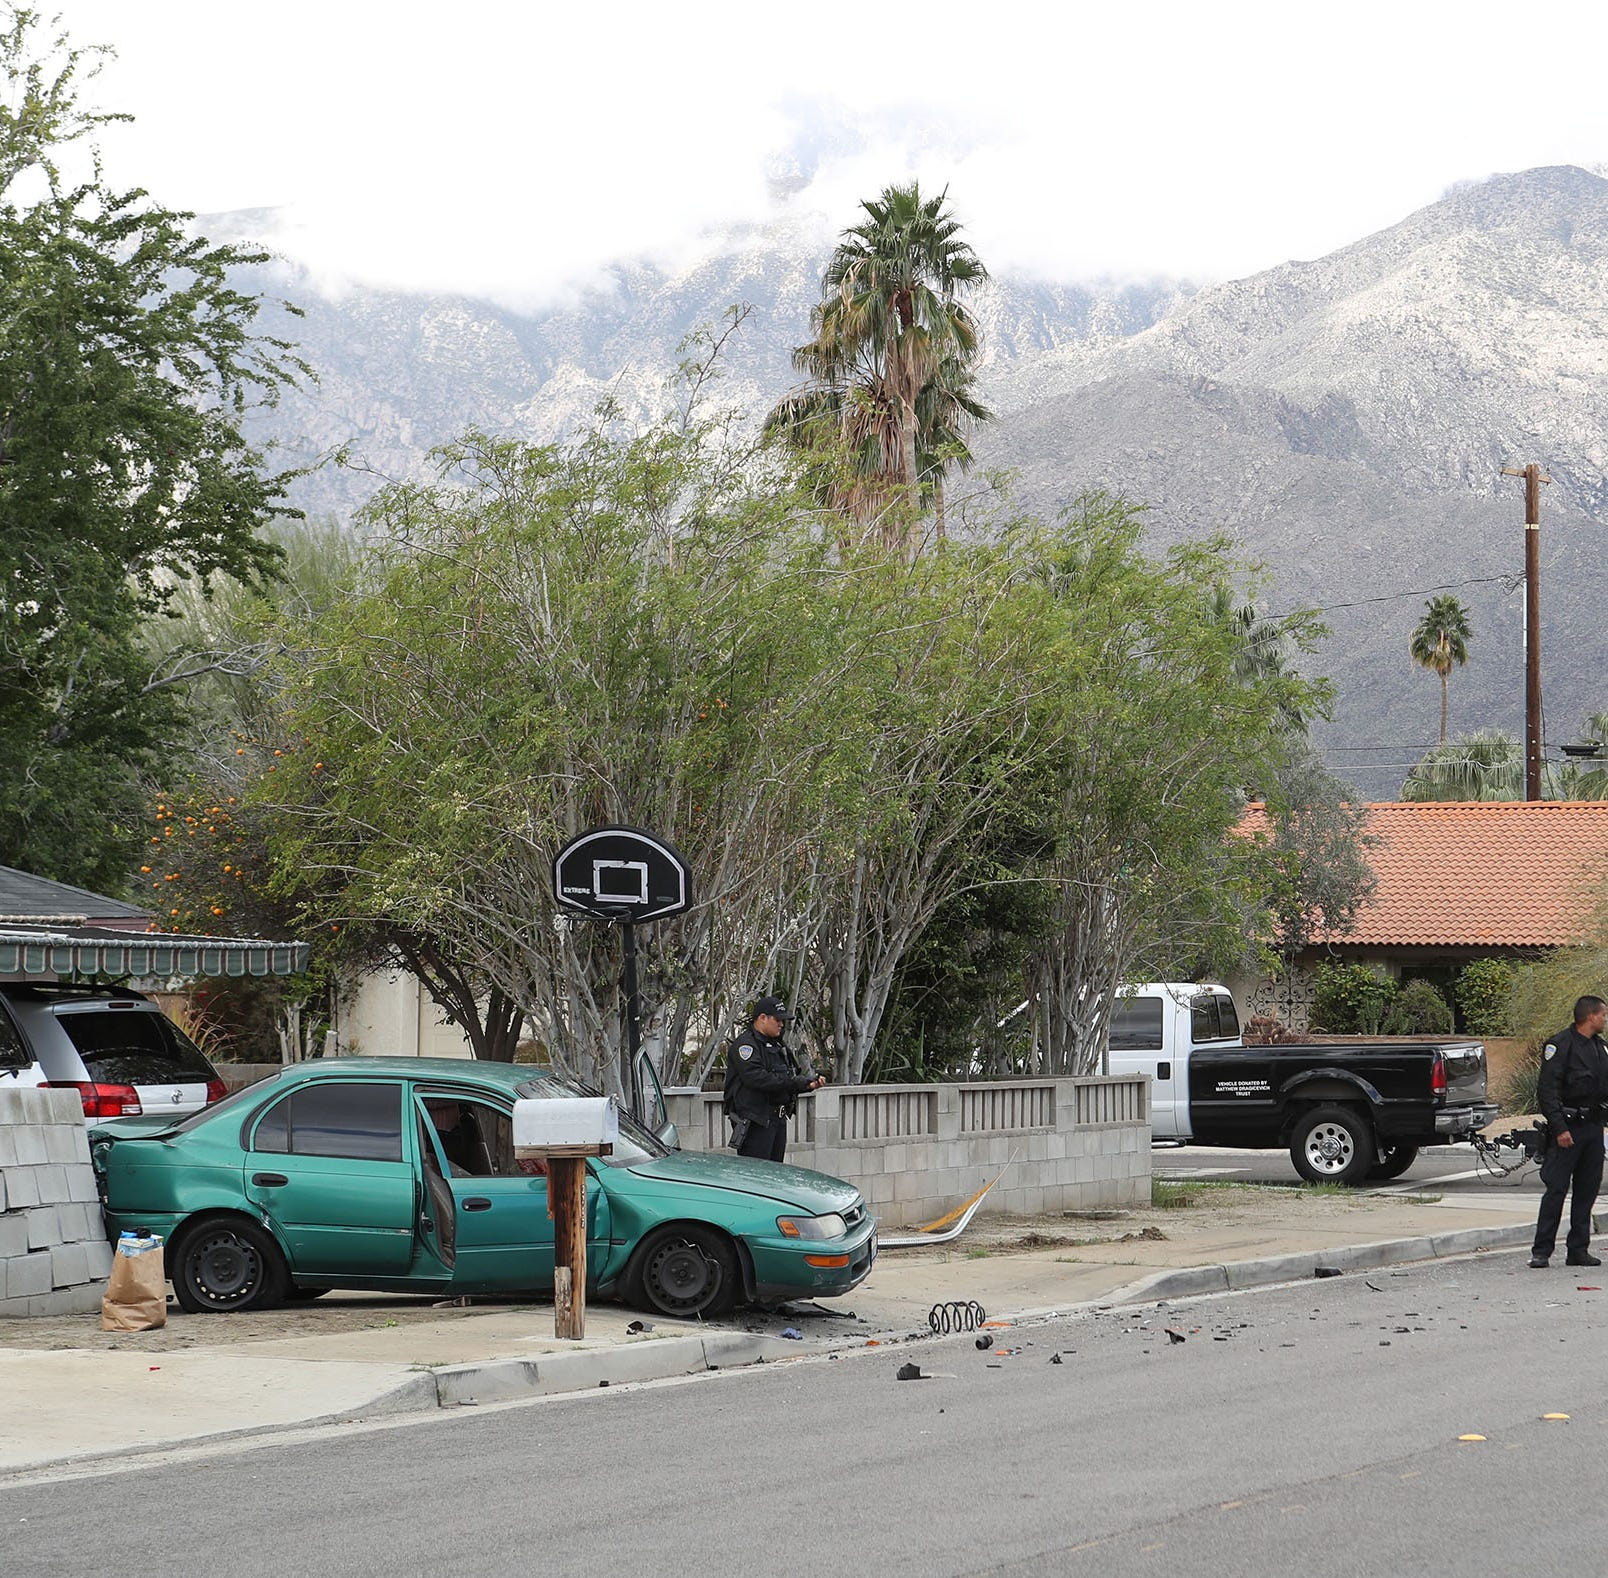 Three teens were shot before Palm Springs police found their bodies in a car Sunday, police said